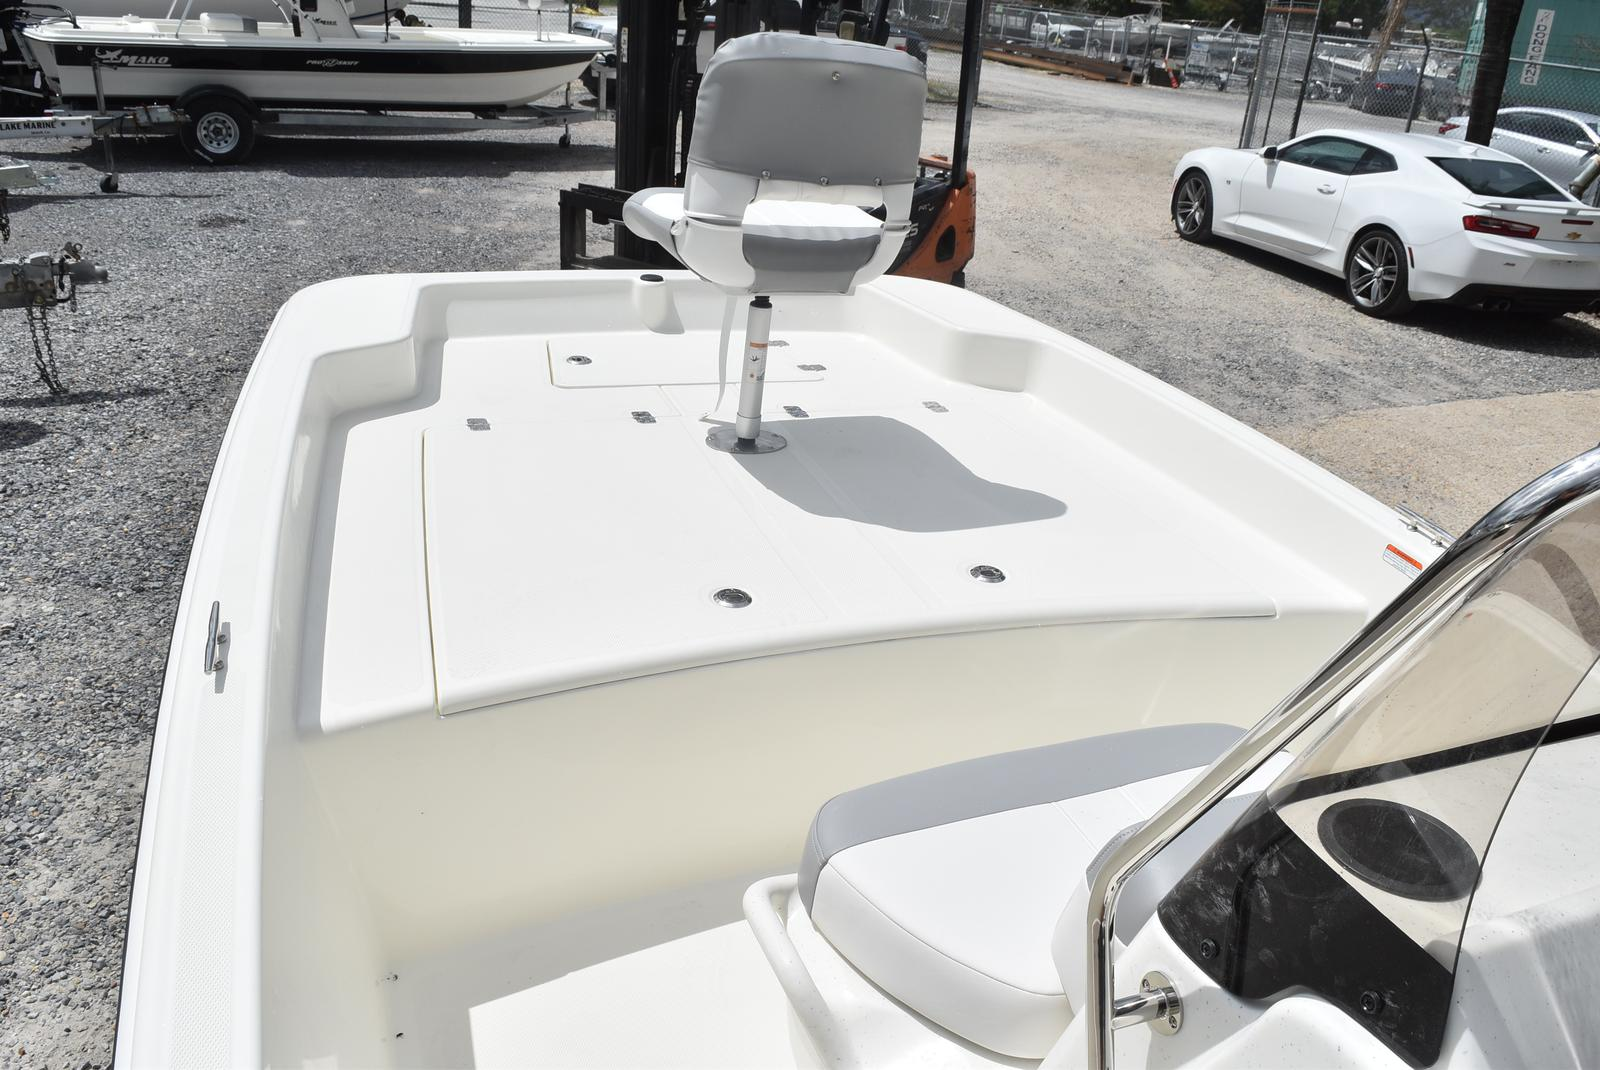 2020 Mako boat for sale, model of the boat is Pro Skiff 17, 75 ELPT & Image # 406 of 702